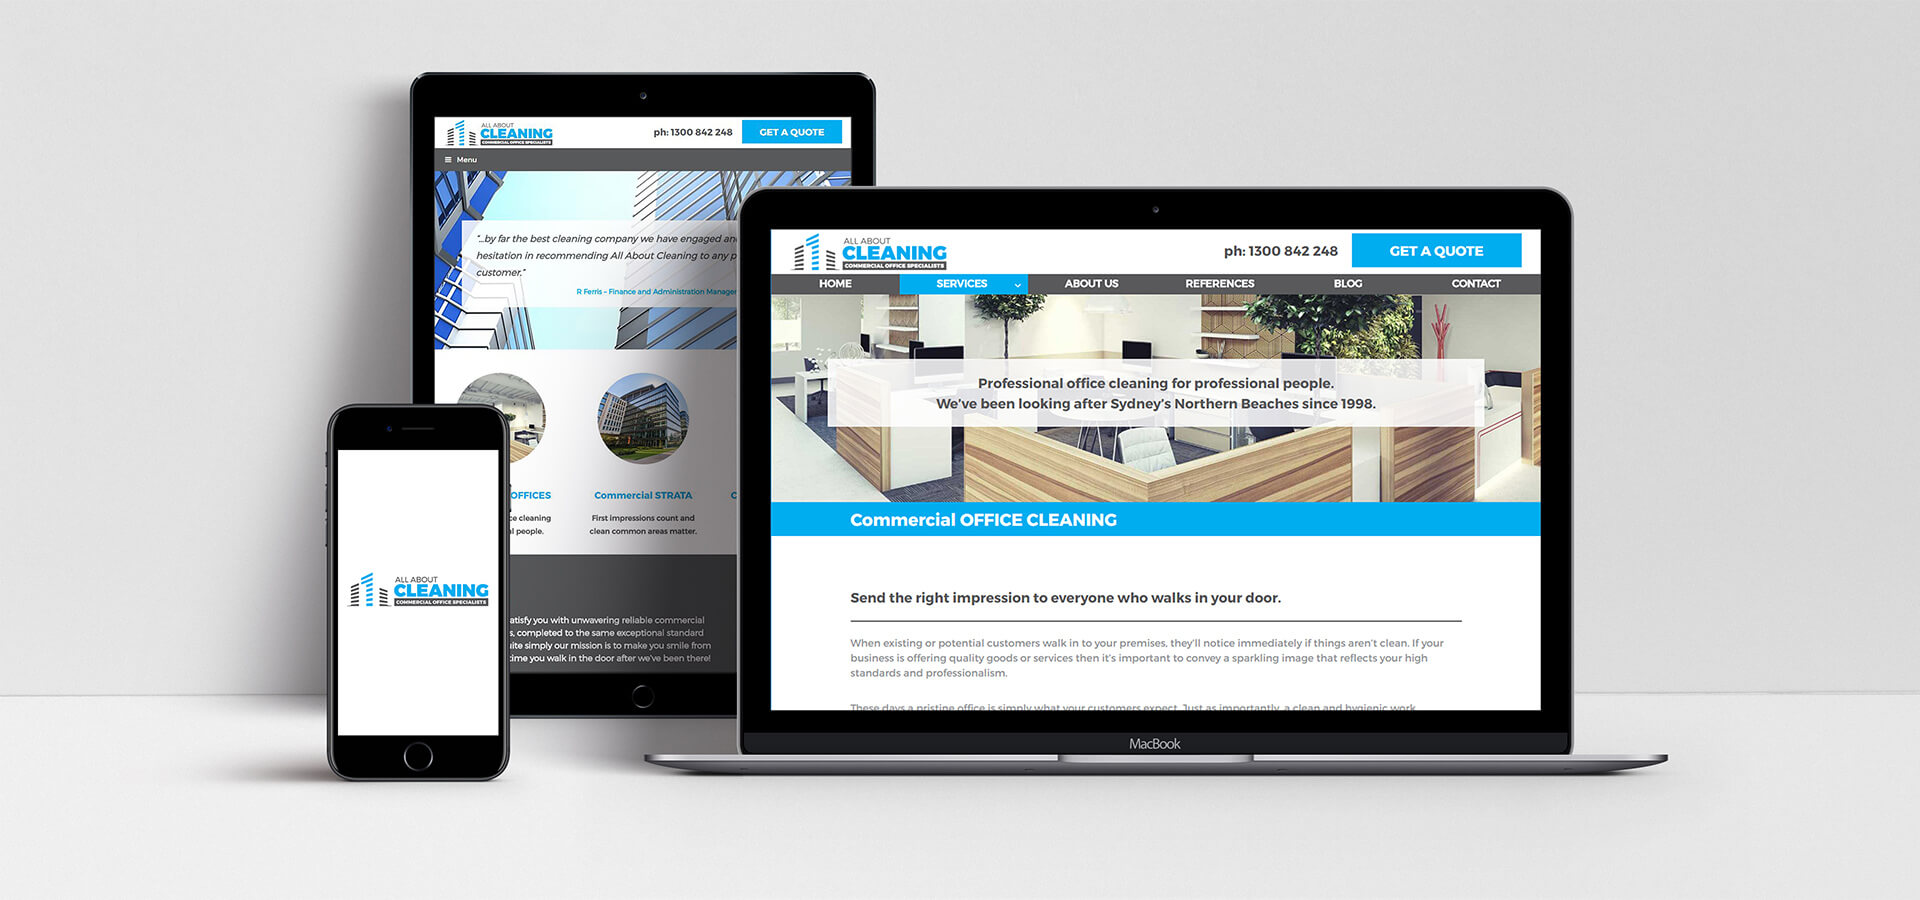 All About Cleaning Website showcase